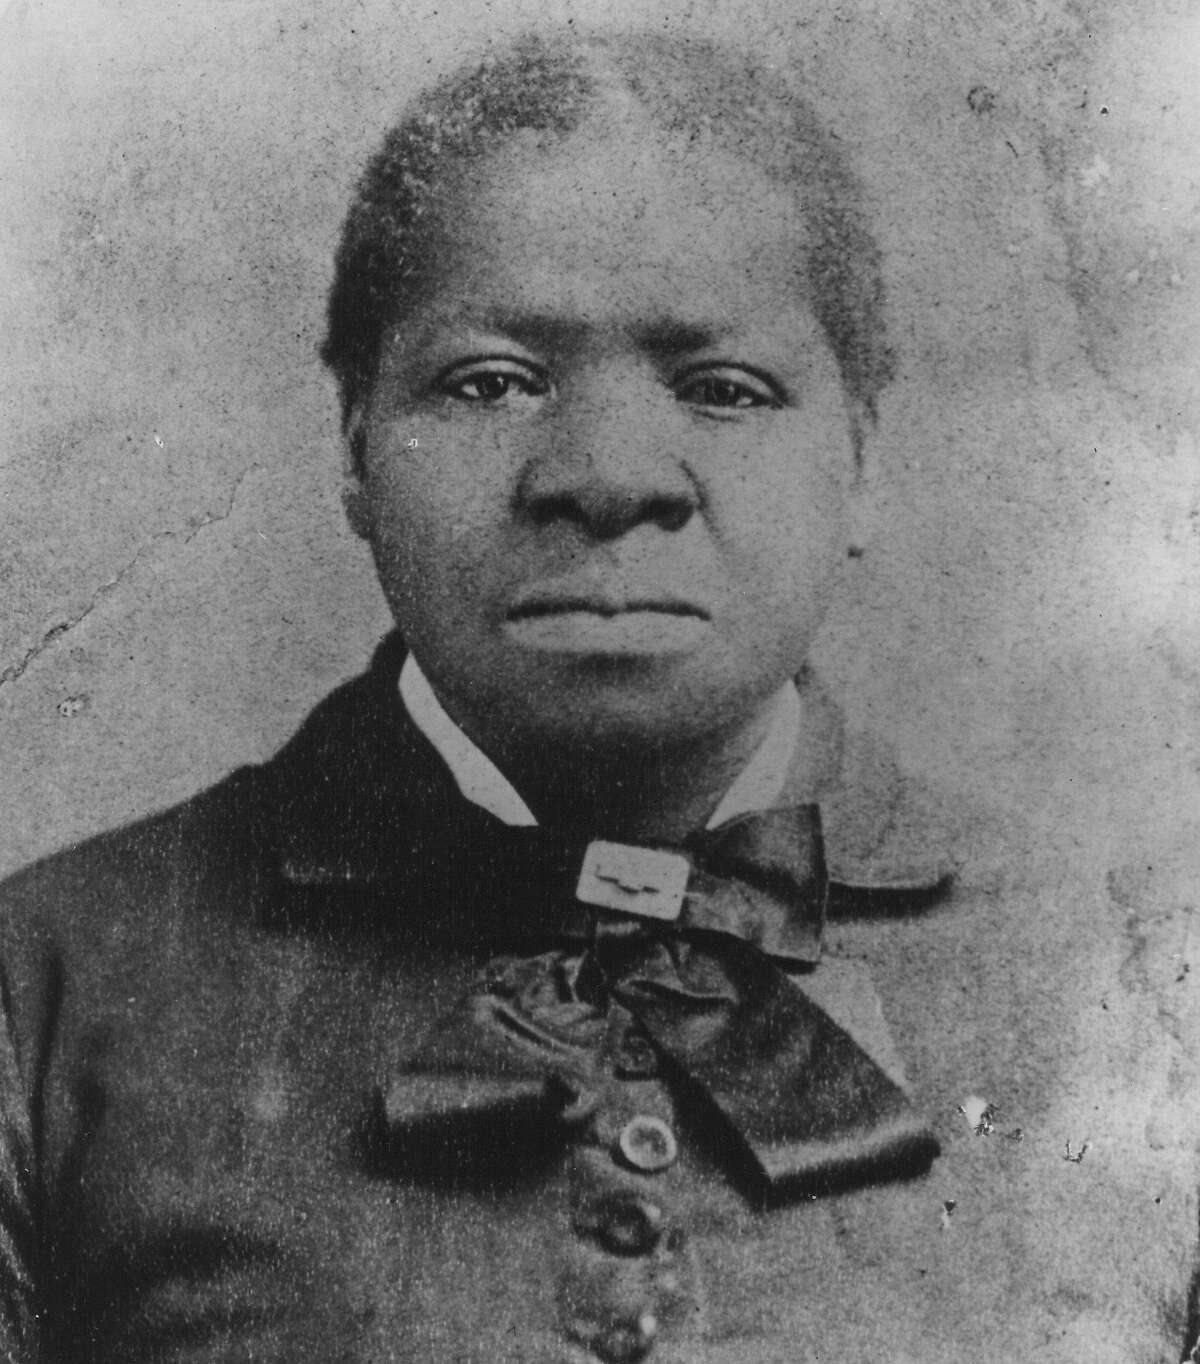 """Mrs. Biddy Mason (1818-1891) was the first African American woman to purchase property in Los Angeles. Photograph circa 1873, according to William David Estrada's book, """"The Los Angeles Plaza: Sacred and Contested Space."""""""